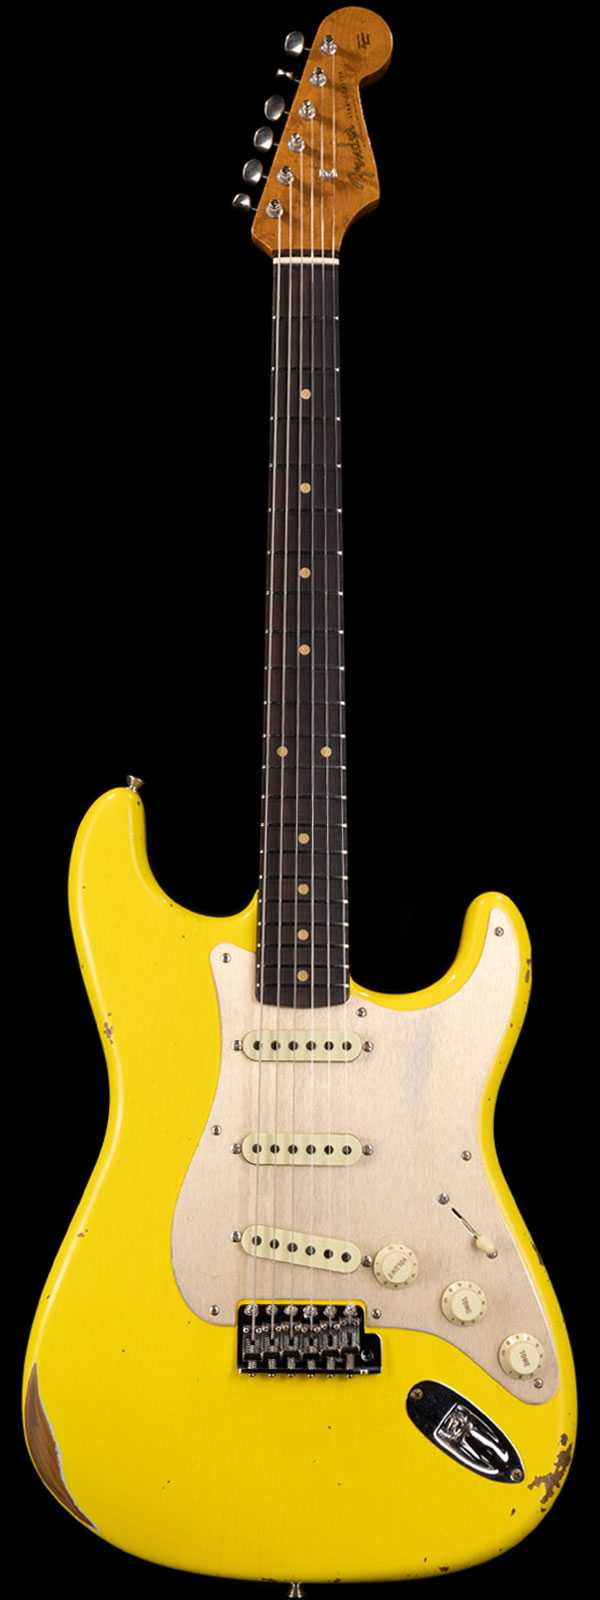 Fender Custom Shop 1960 Stratocaster Relic Roasted Body and Neck Aged Graffiti Yellow